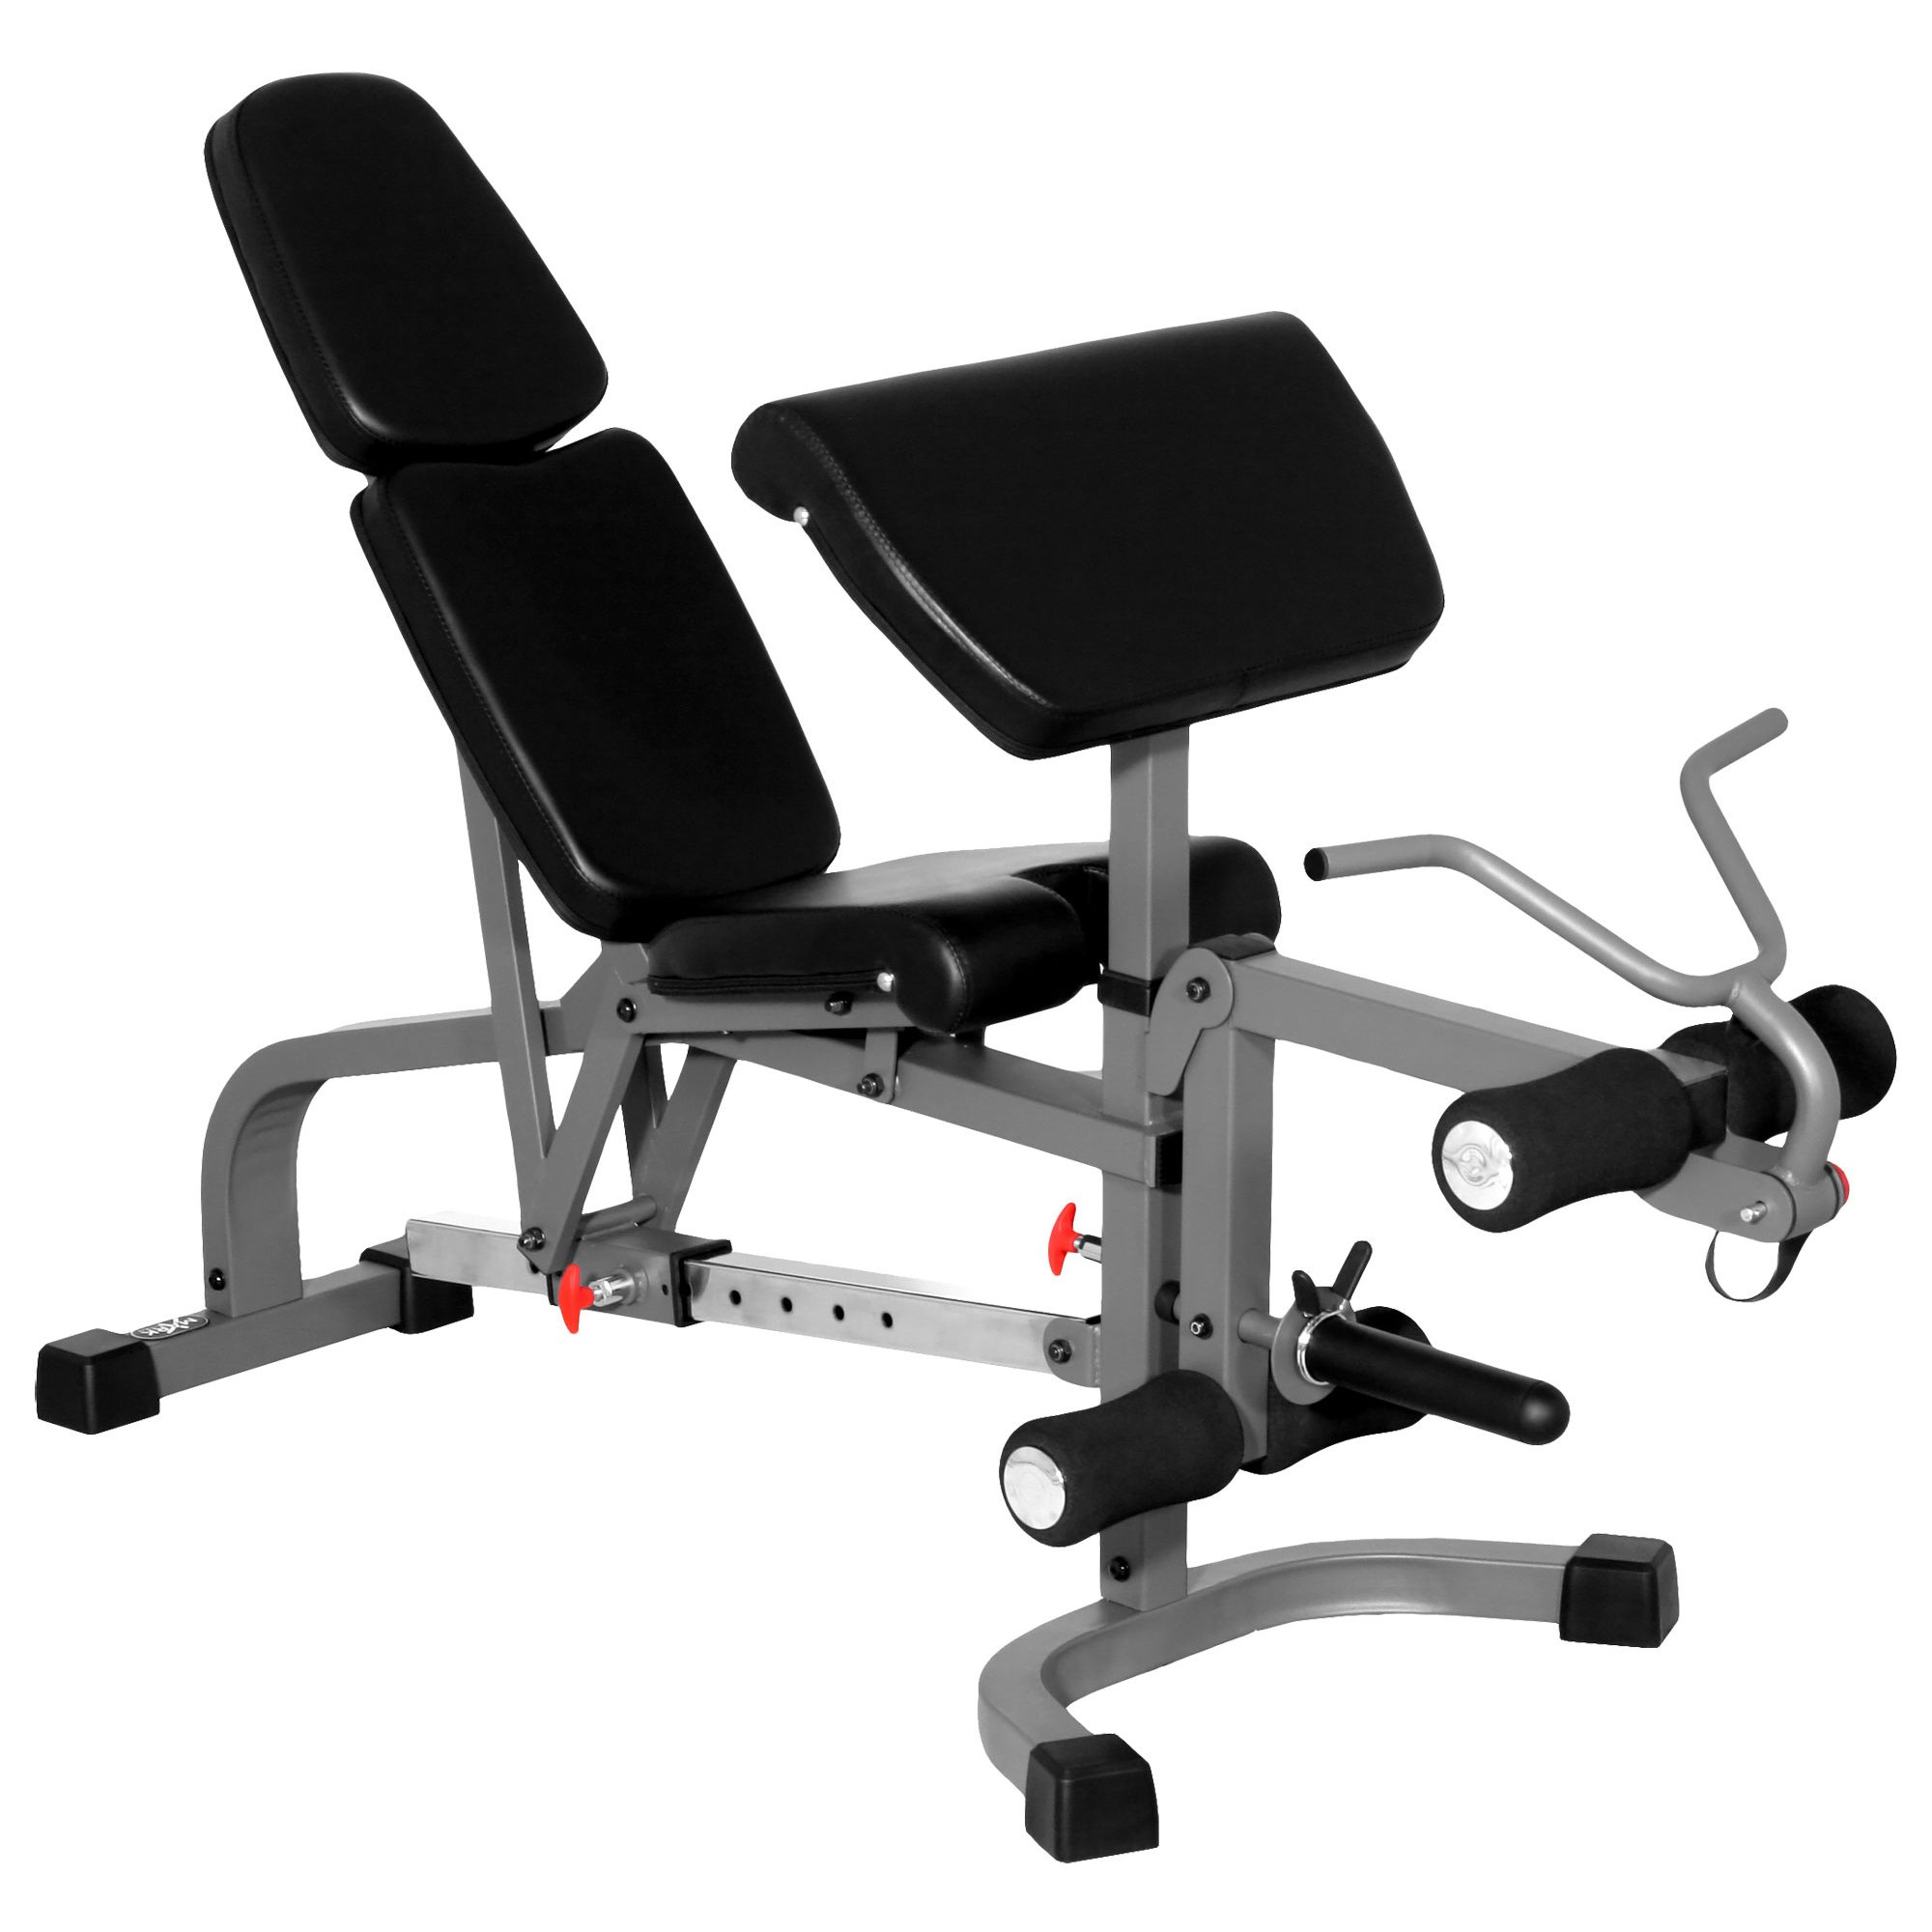 XMark FID Flat Incline Decline Weight Bench, Adjustable Bench, Decline to Full Military Press Position, Preacher Curl and Leg Extension XM-4419 (Gray)